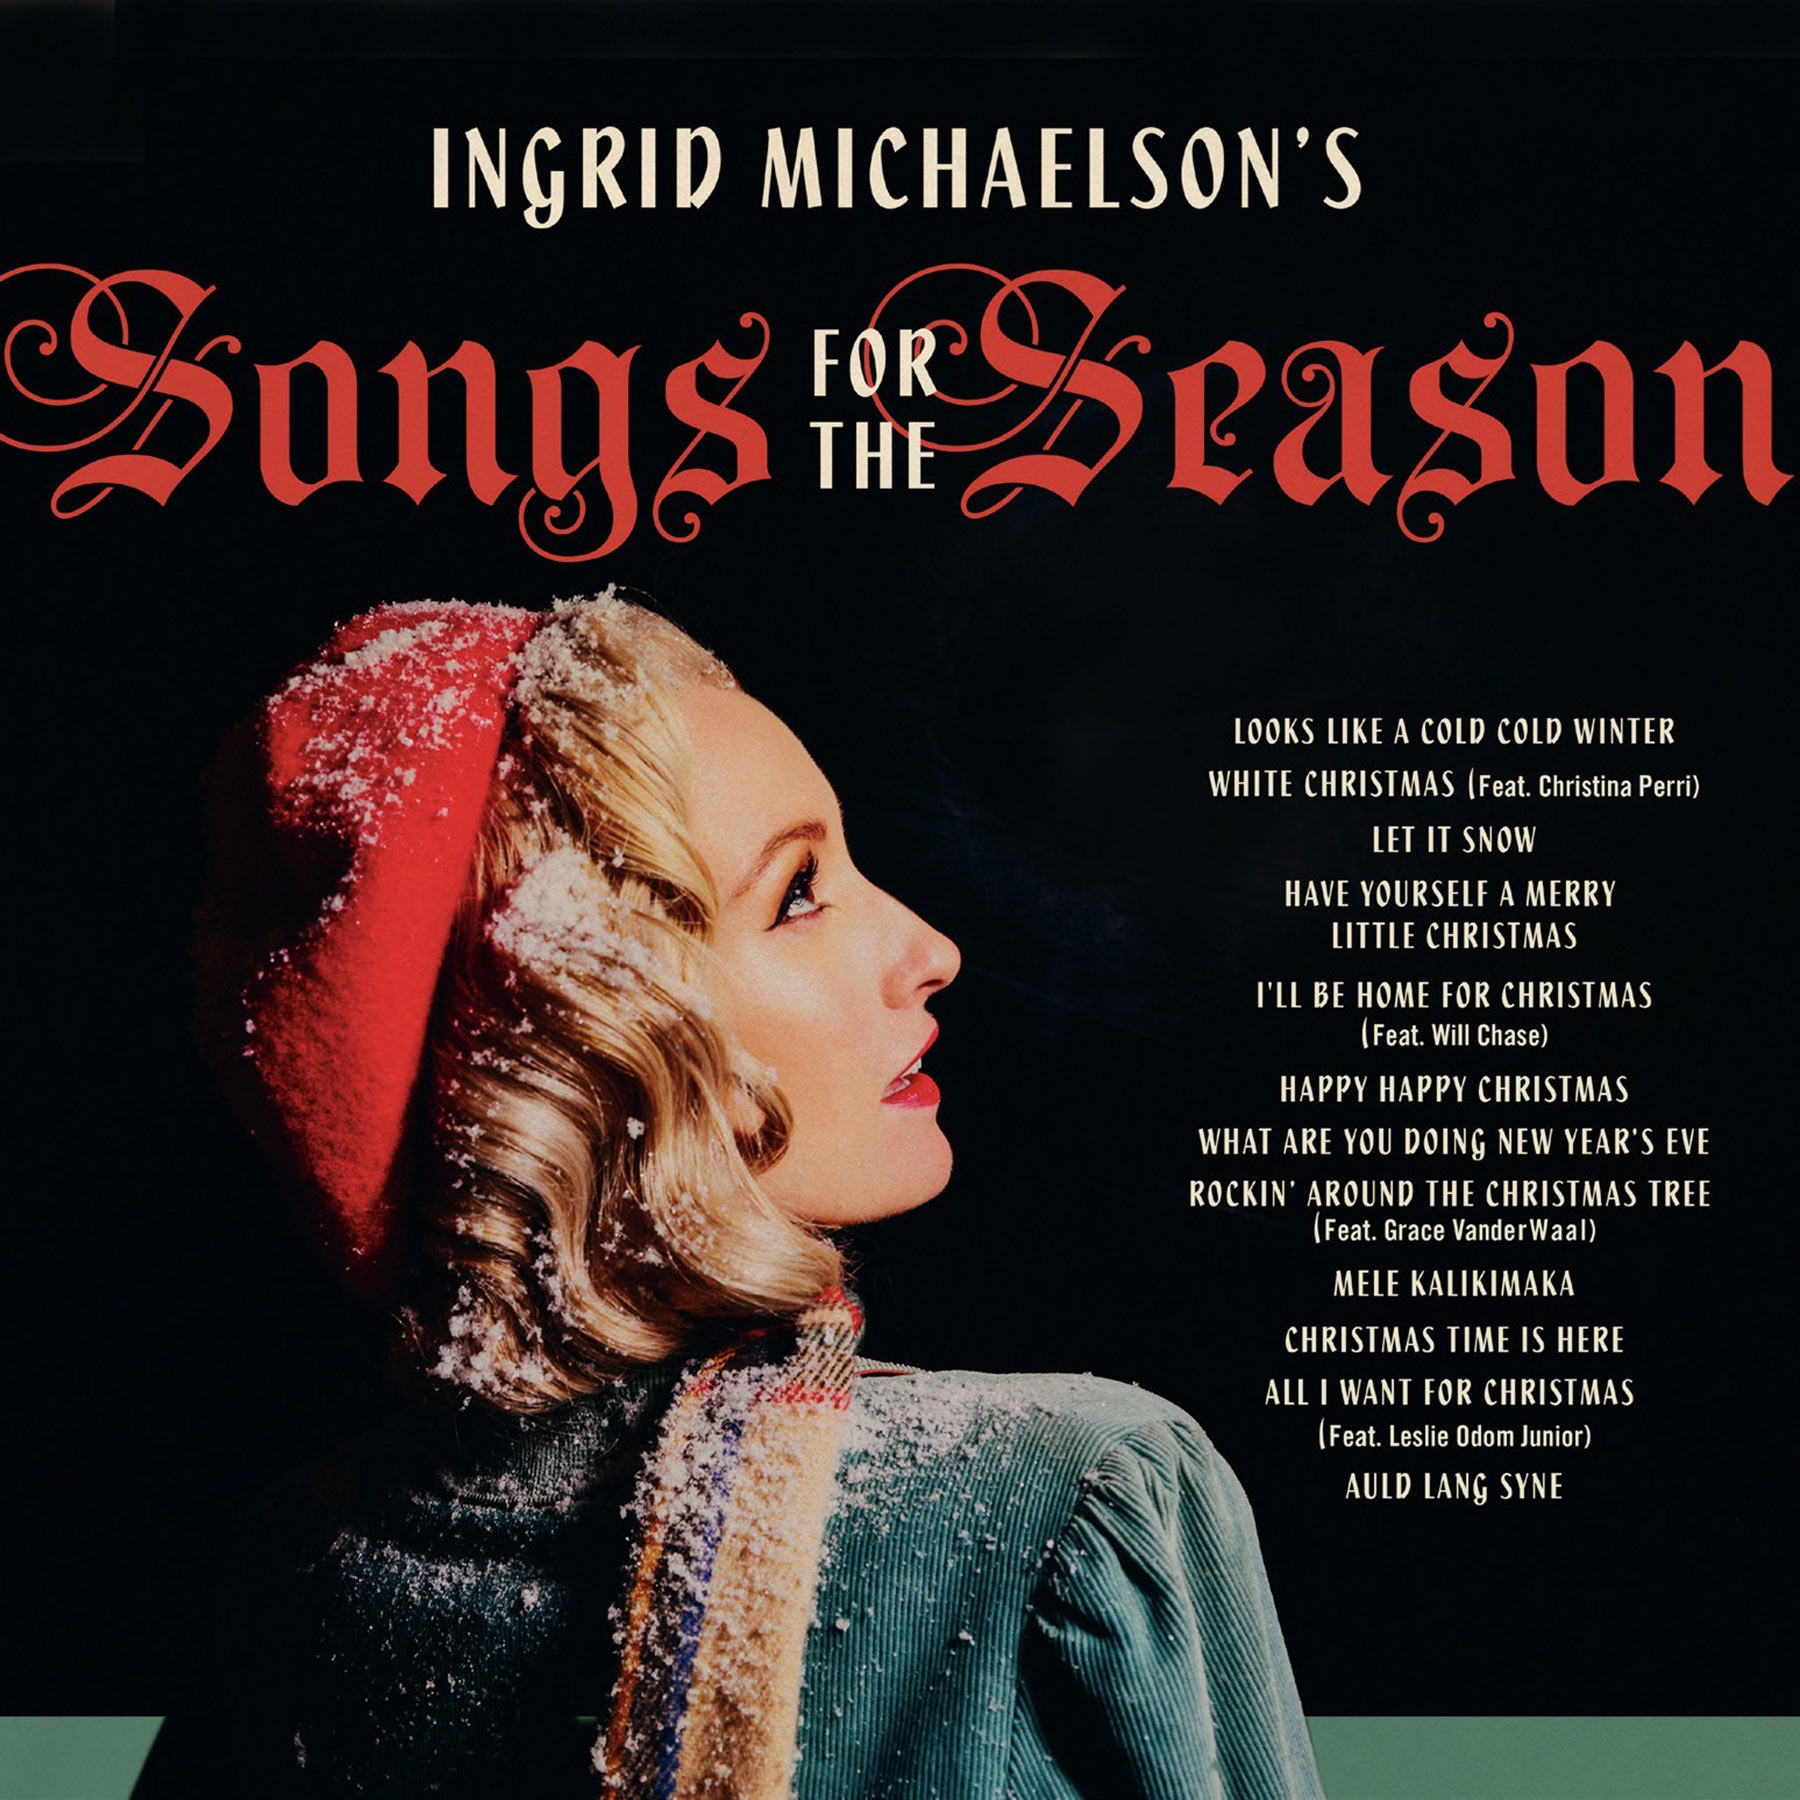 SongsfortheSeasonCover